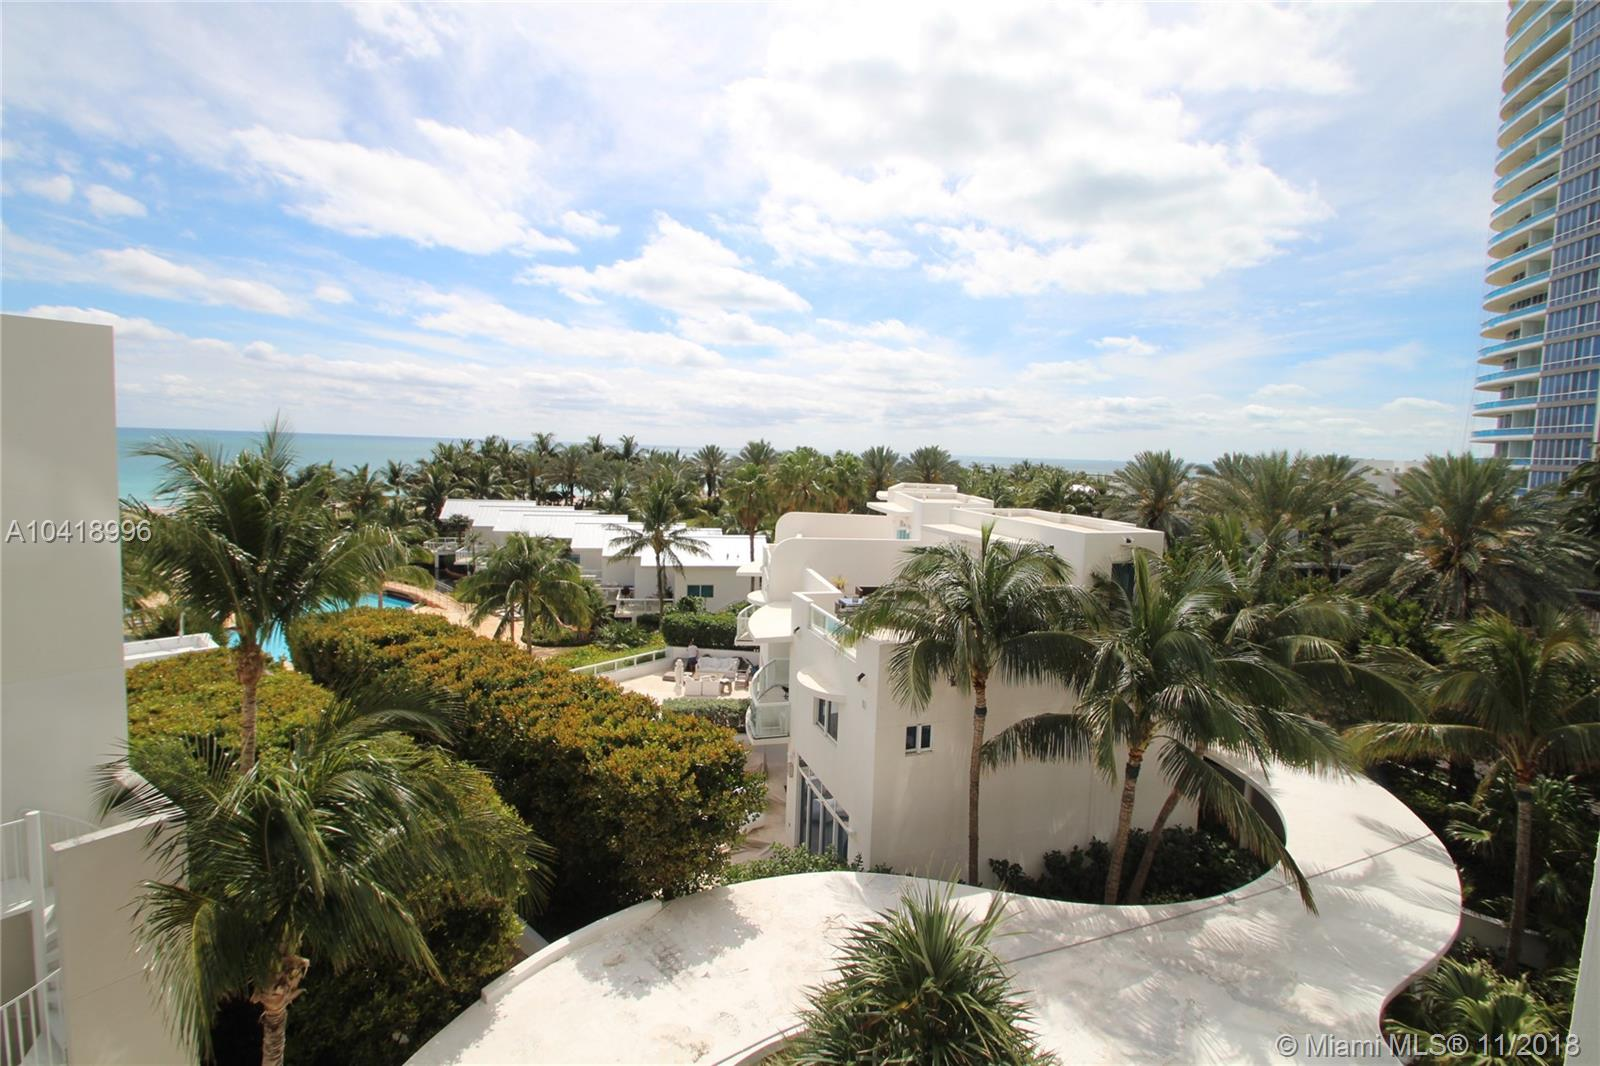 50 S Pointe Dr #701 For Sale A10418996, FL